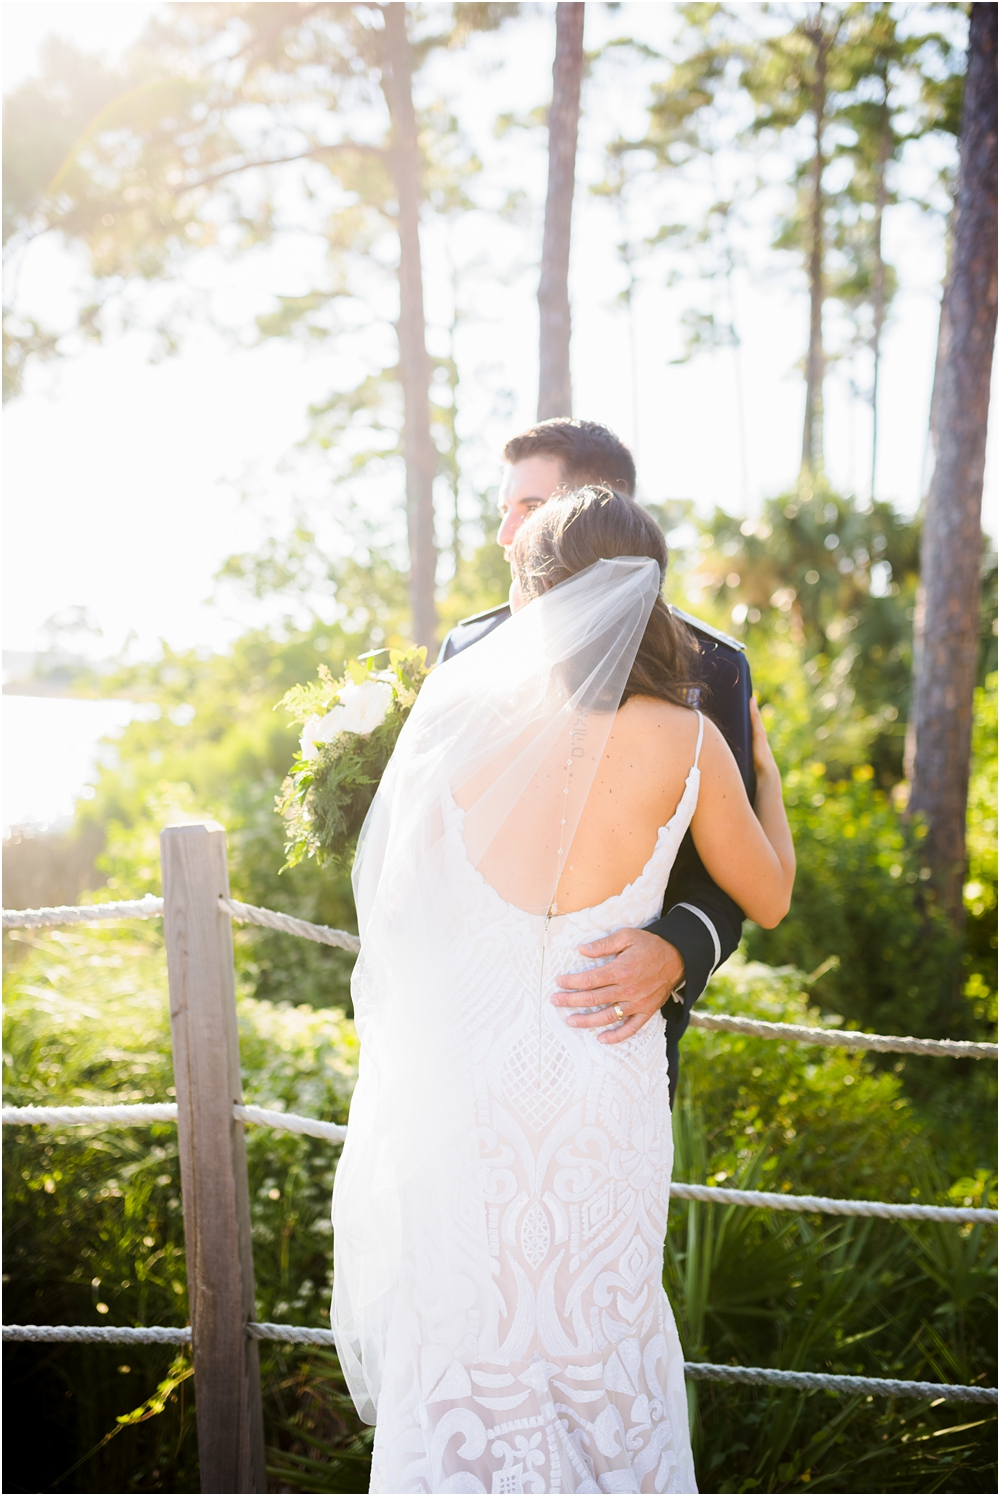 amack-wedding-kiersten-stevenson-photography-30a-panama-city-beach-dothan-tallahassee-(227-of-882).JPG